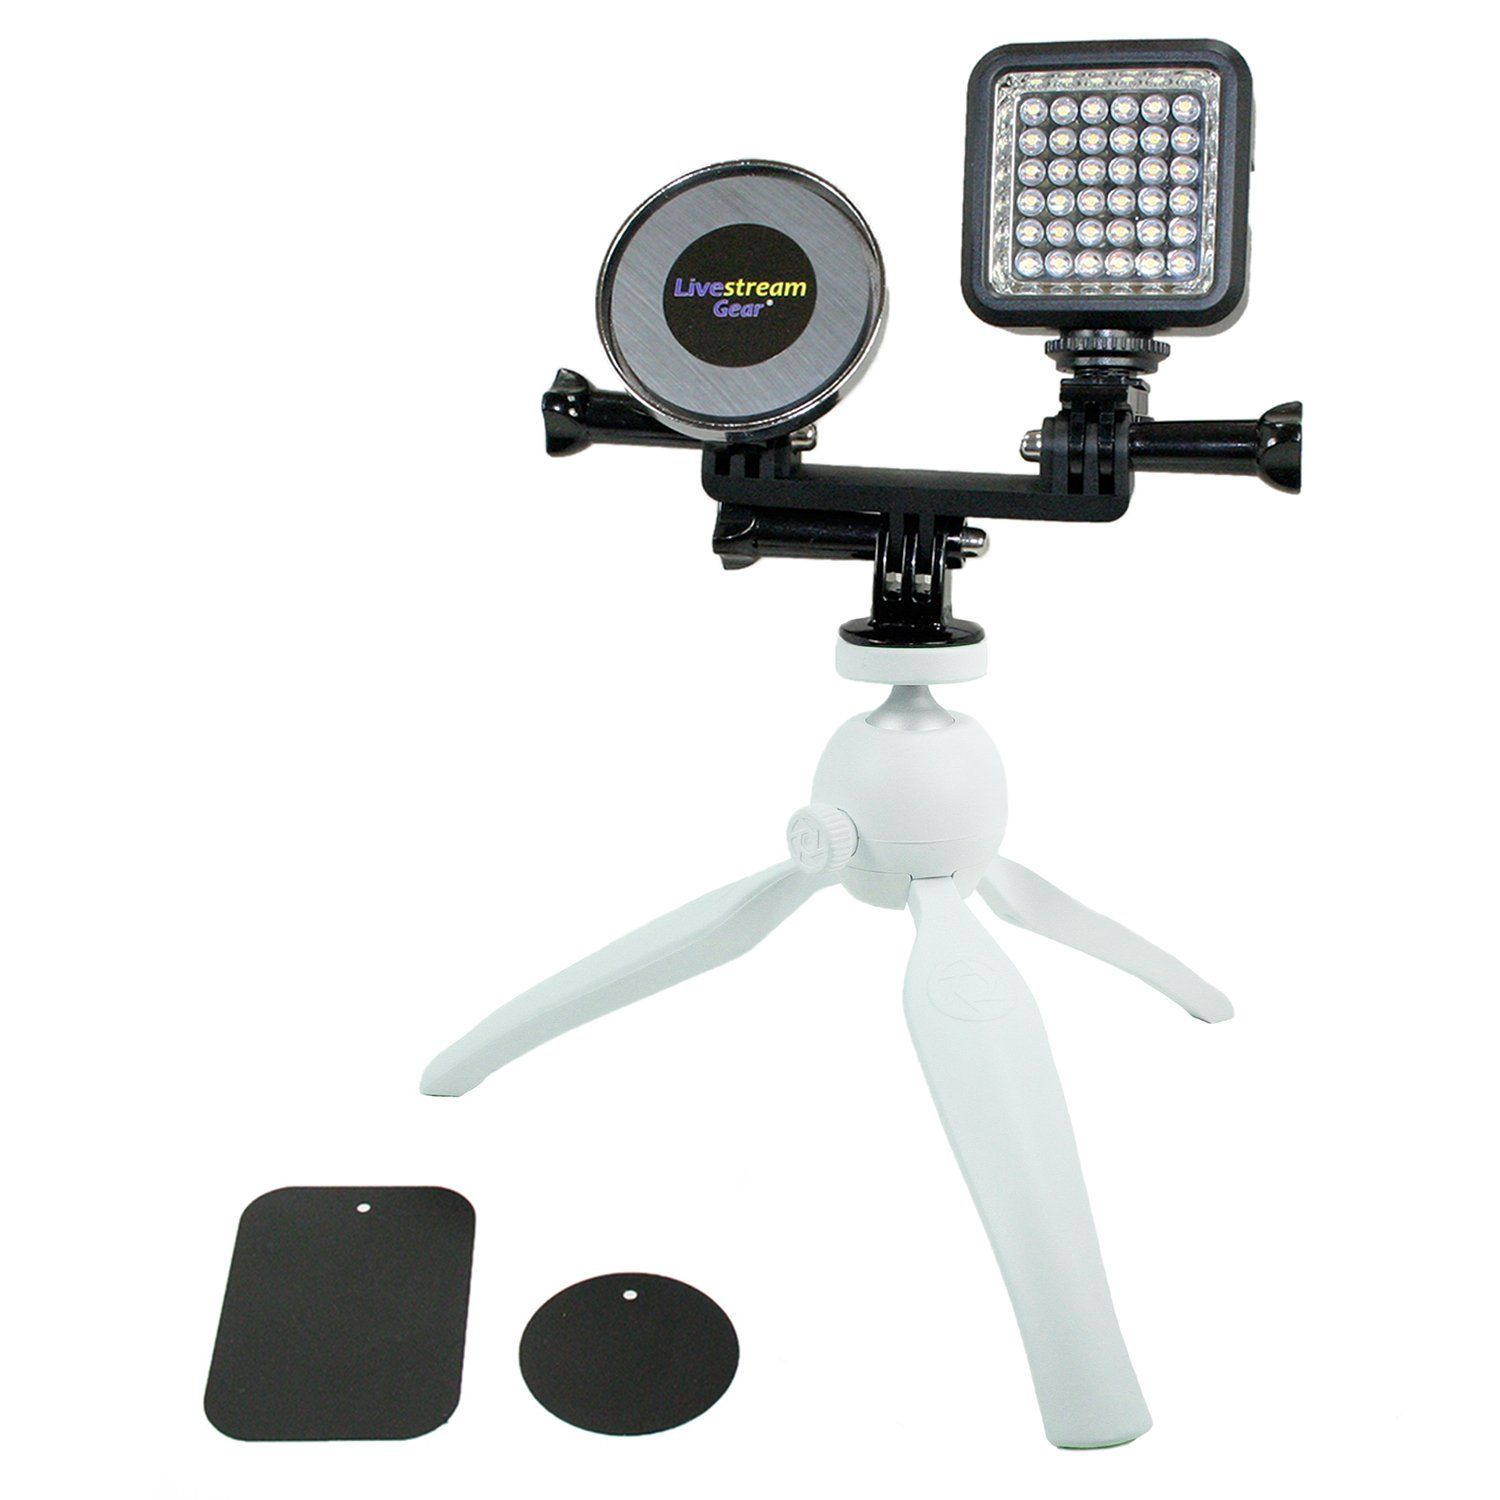 Live Stream Gear Phone And Led Light Tripod Setup With Magnetic Mount System Mount Any Phone Via Magnet And Met Selfie Ring Light Led Lights Rechargeable Light